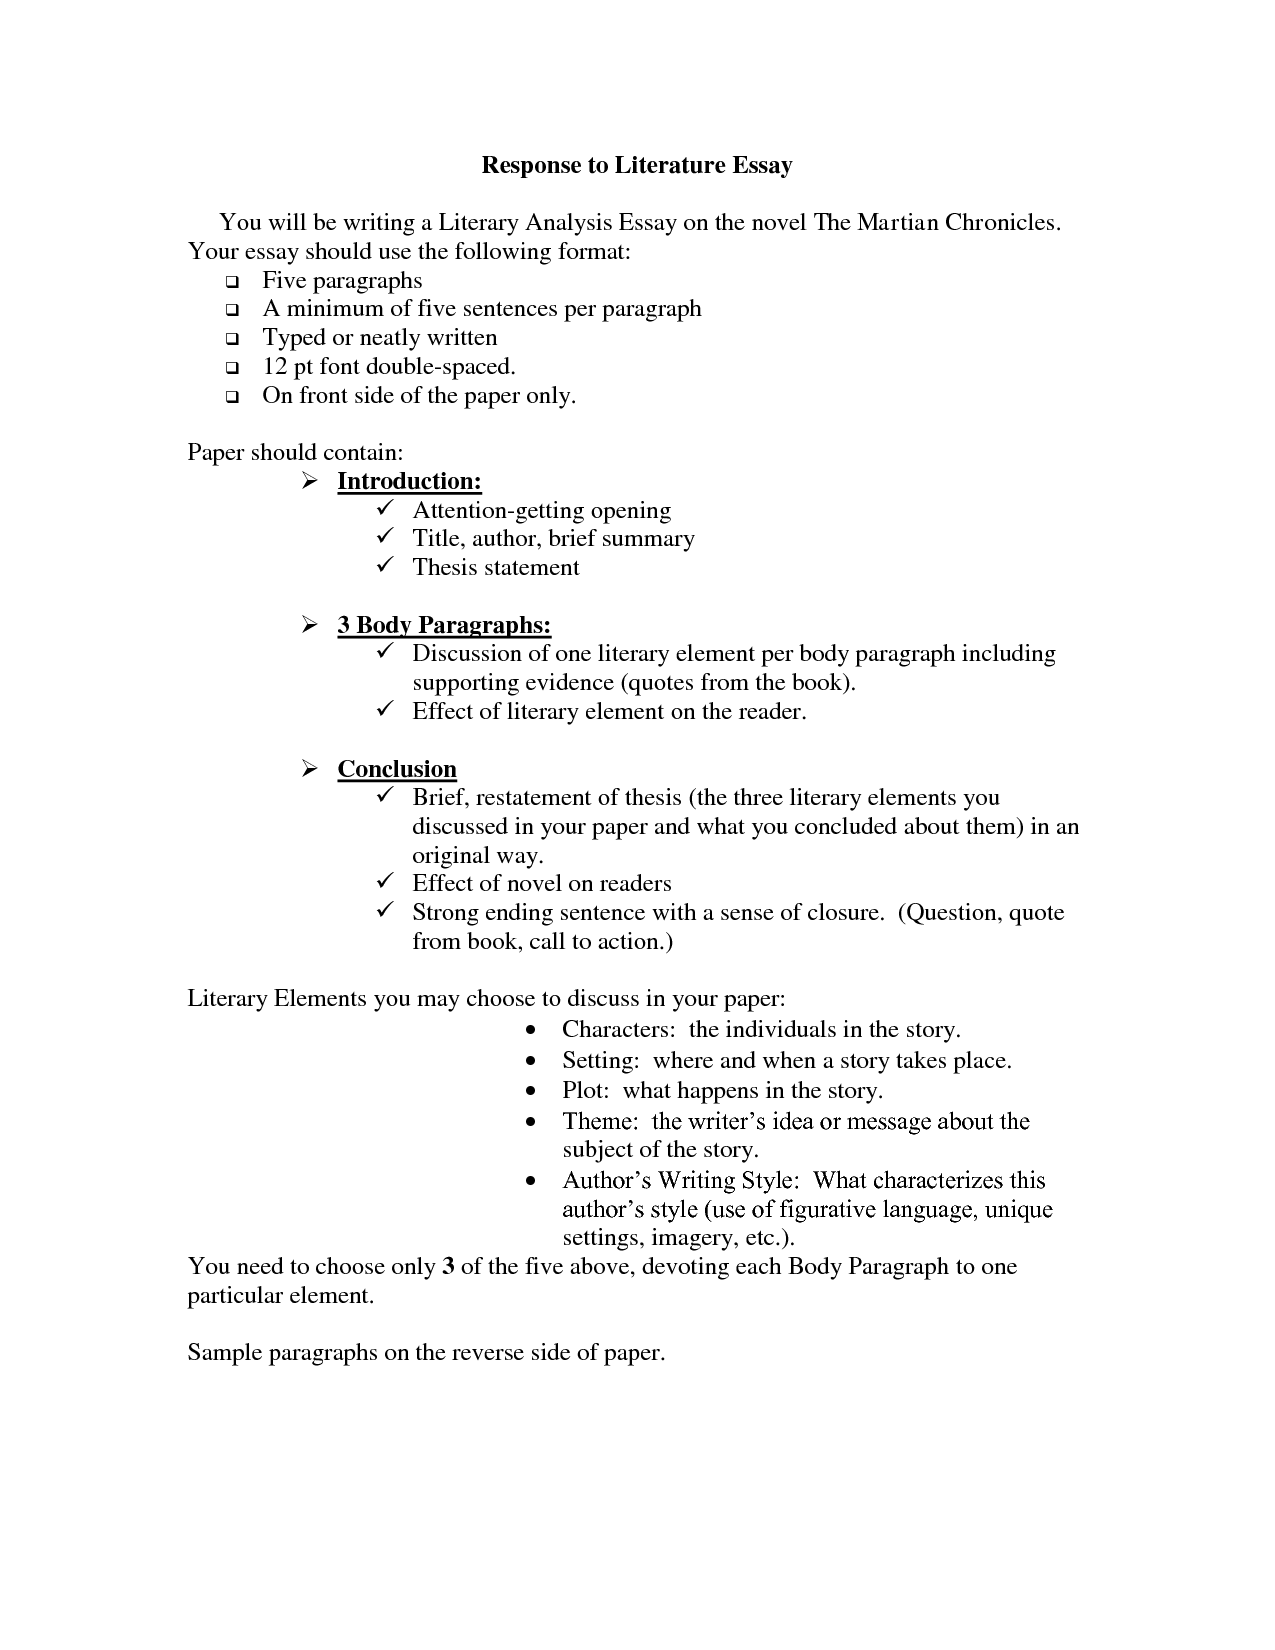 002 Literary Essay Help Responseature Character Sketch Macbeth Introduction College To Example 5th Grade 10th 8th 4th Examples Student Responding Sample 9th High School 6th 3rd How Write Shocking A On Full